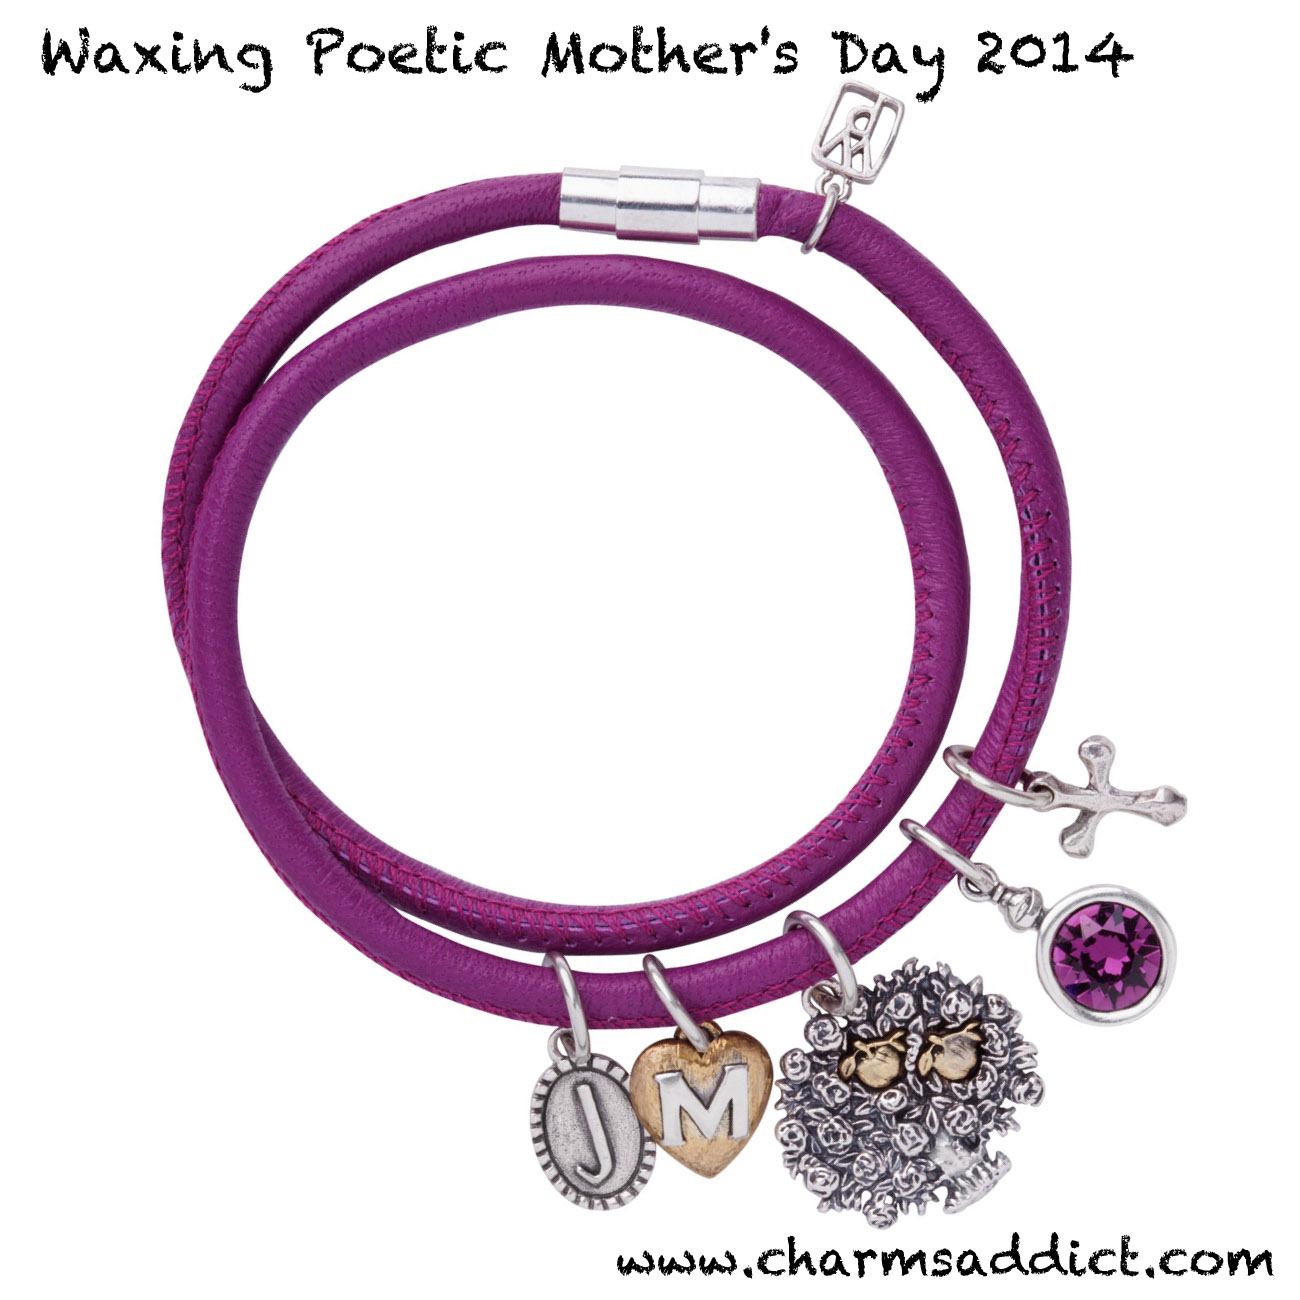 Waxing Poetic Mother's Day 2014 Release